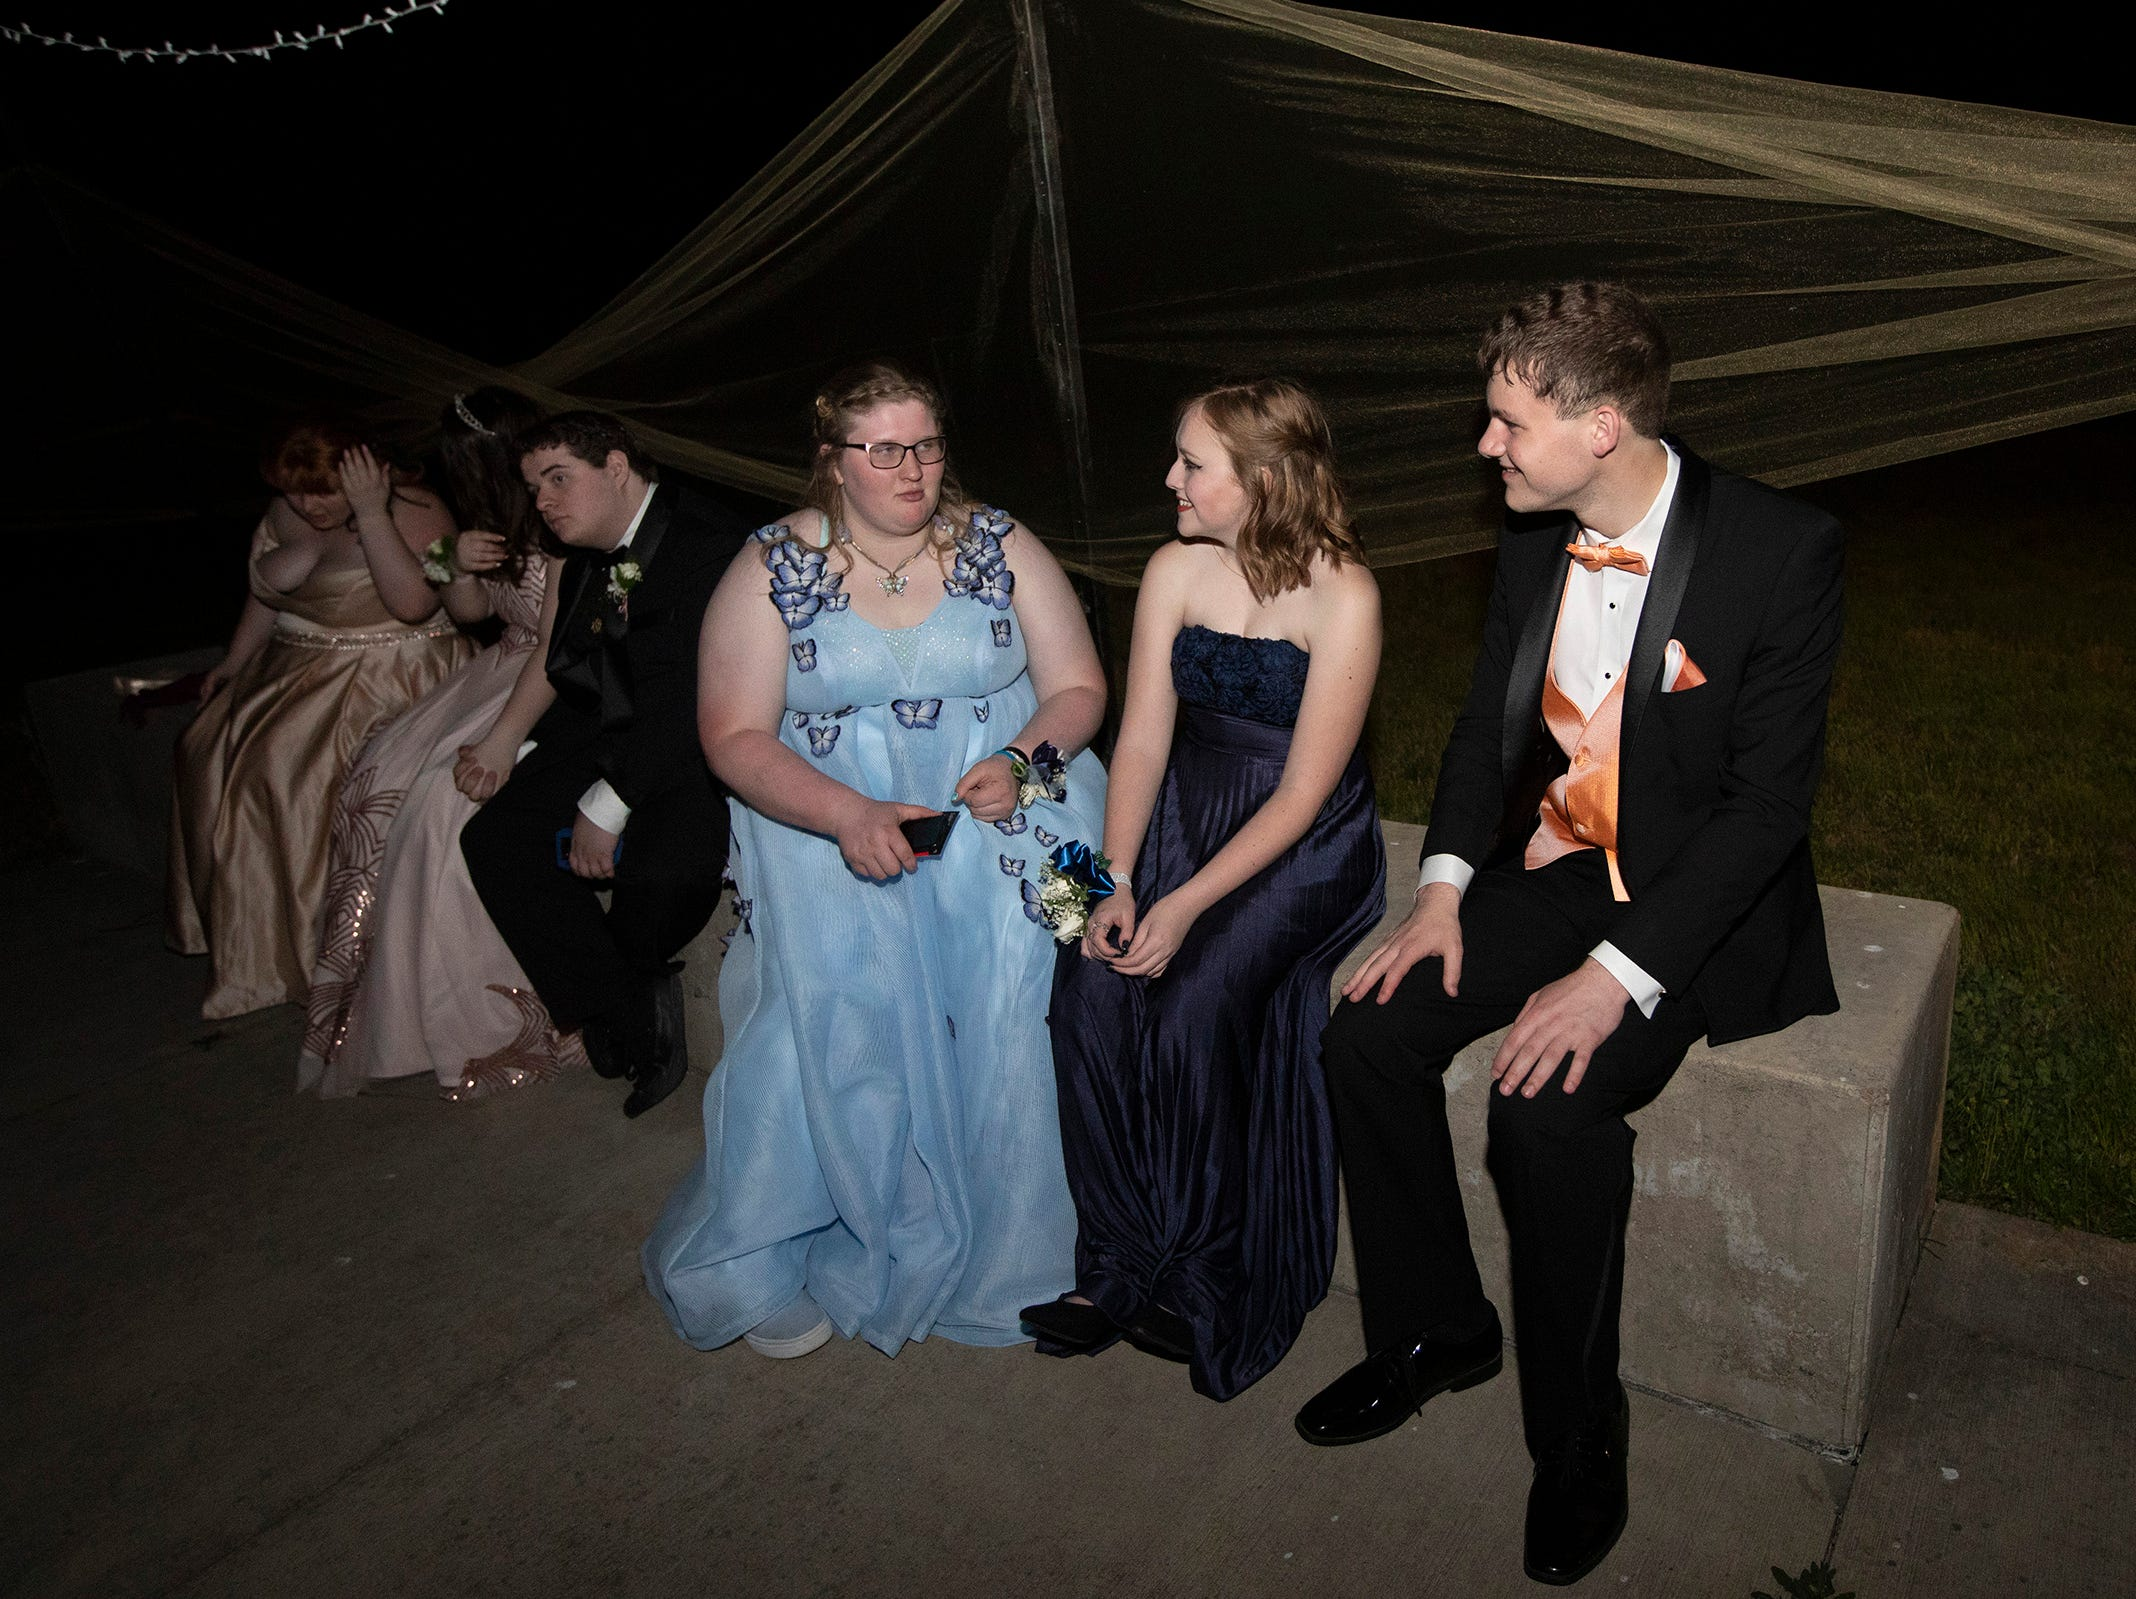 Gillian Ross, Kaitlin Anderson and Zachary Ludwig take a break from dancing to sit on the patio during the Dallas High School prom at the Dallas Armory on Saturday, May 12.